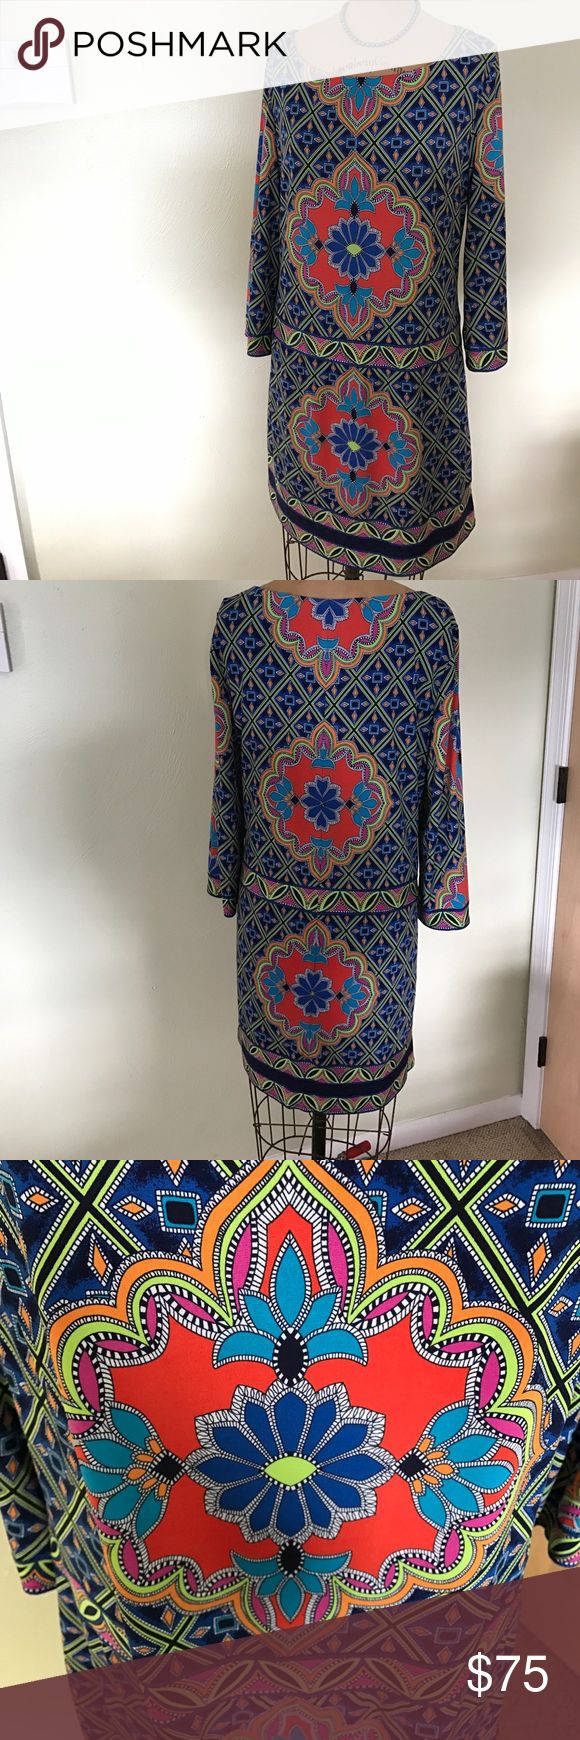 Laundry Shelli Segal medallion shift dress NWOT. Multicolored medallion pattern. Poly with 5% spandex. Body is lined. Laundry by Shelli Segal Dresses Long Sleeve